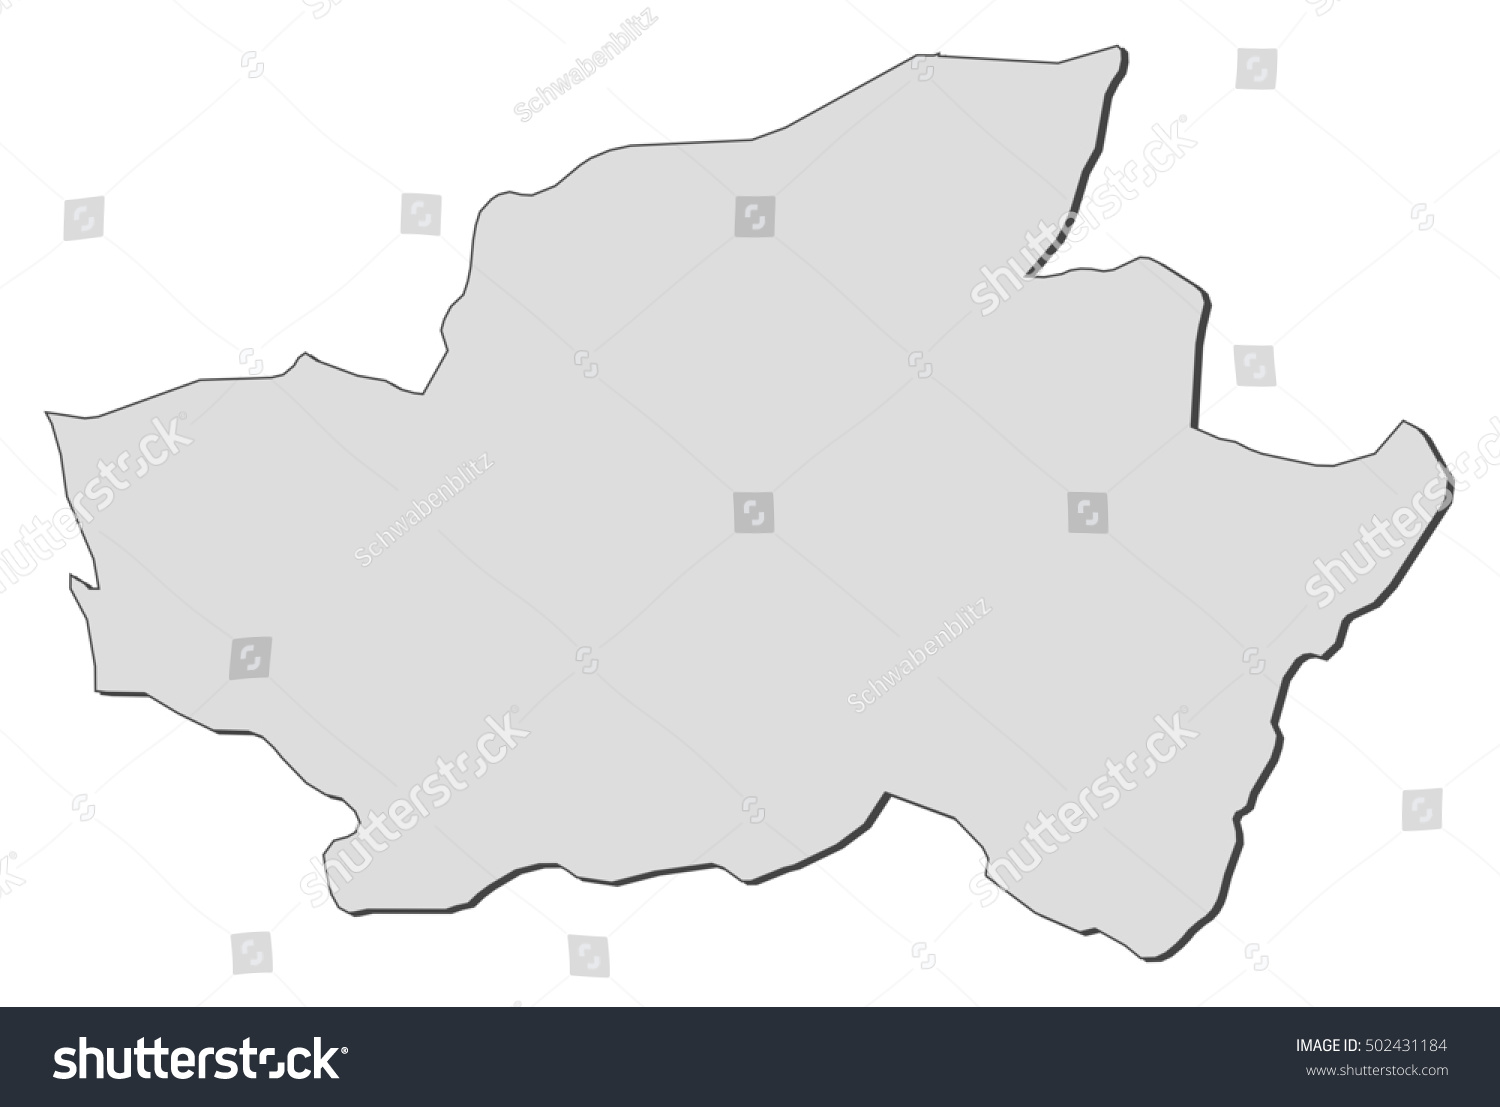 Map Braga Portugal Stock Vector 2018 502431184 Shutterstock